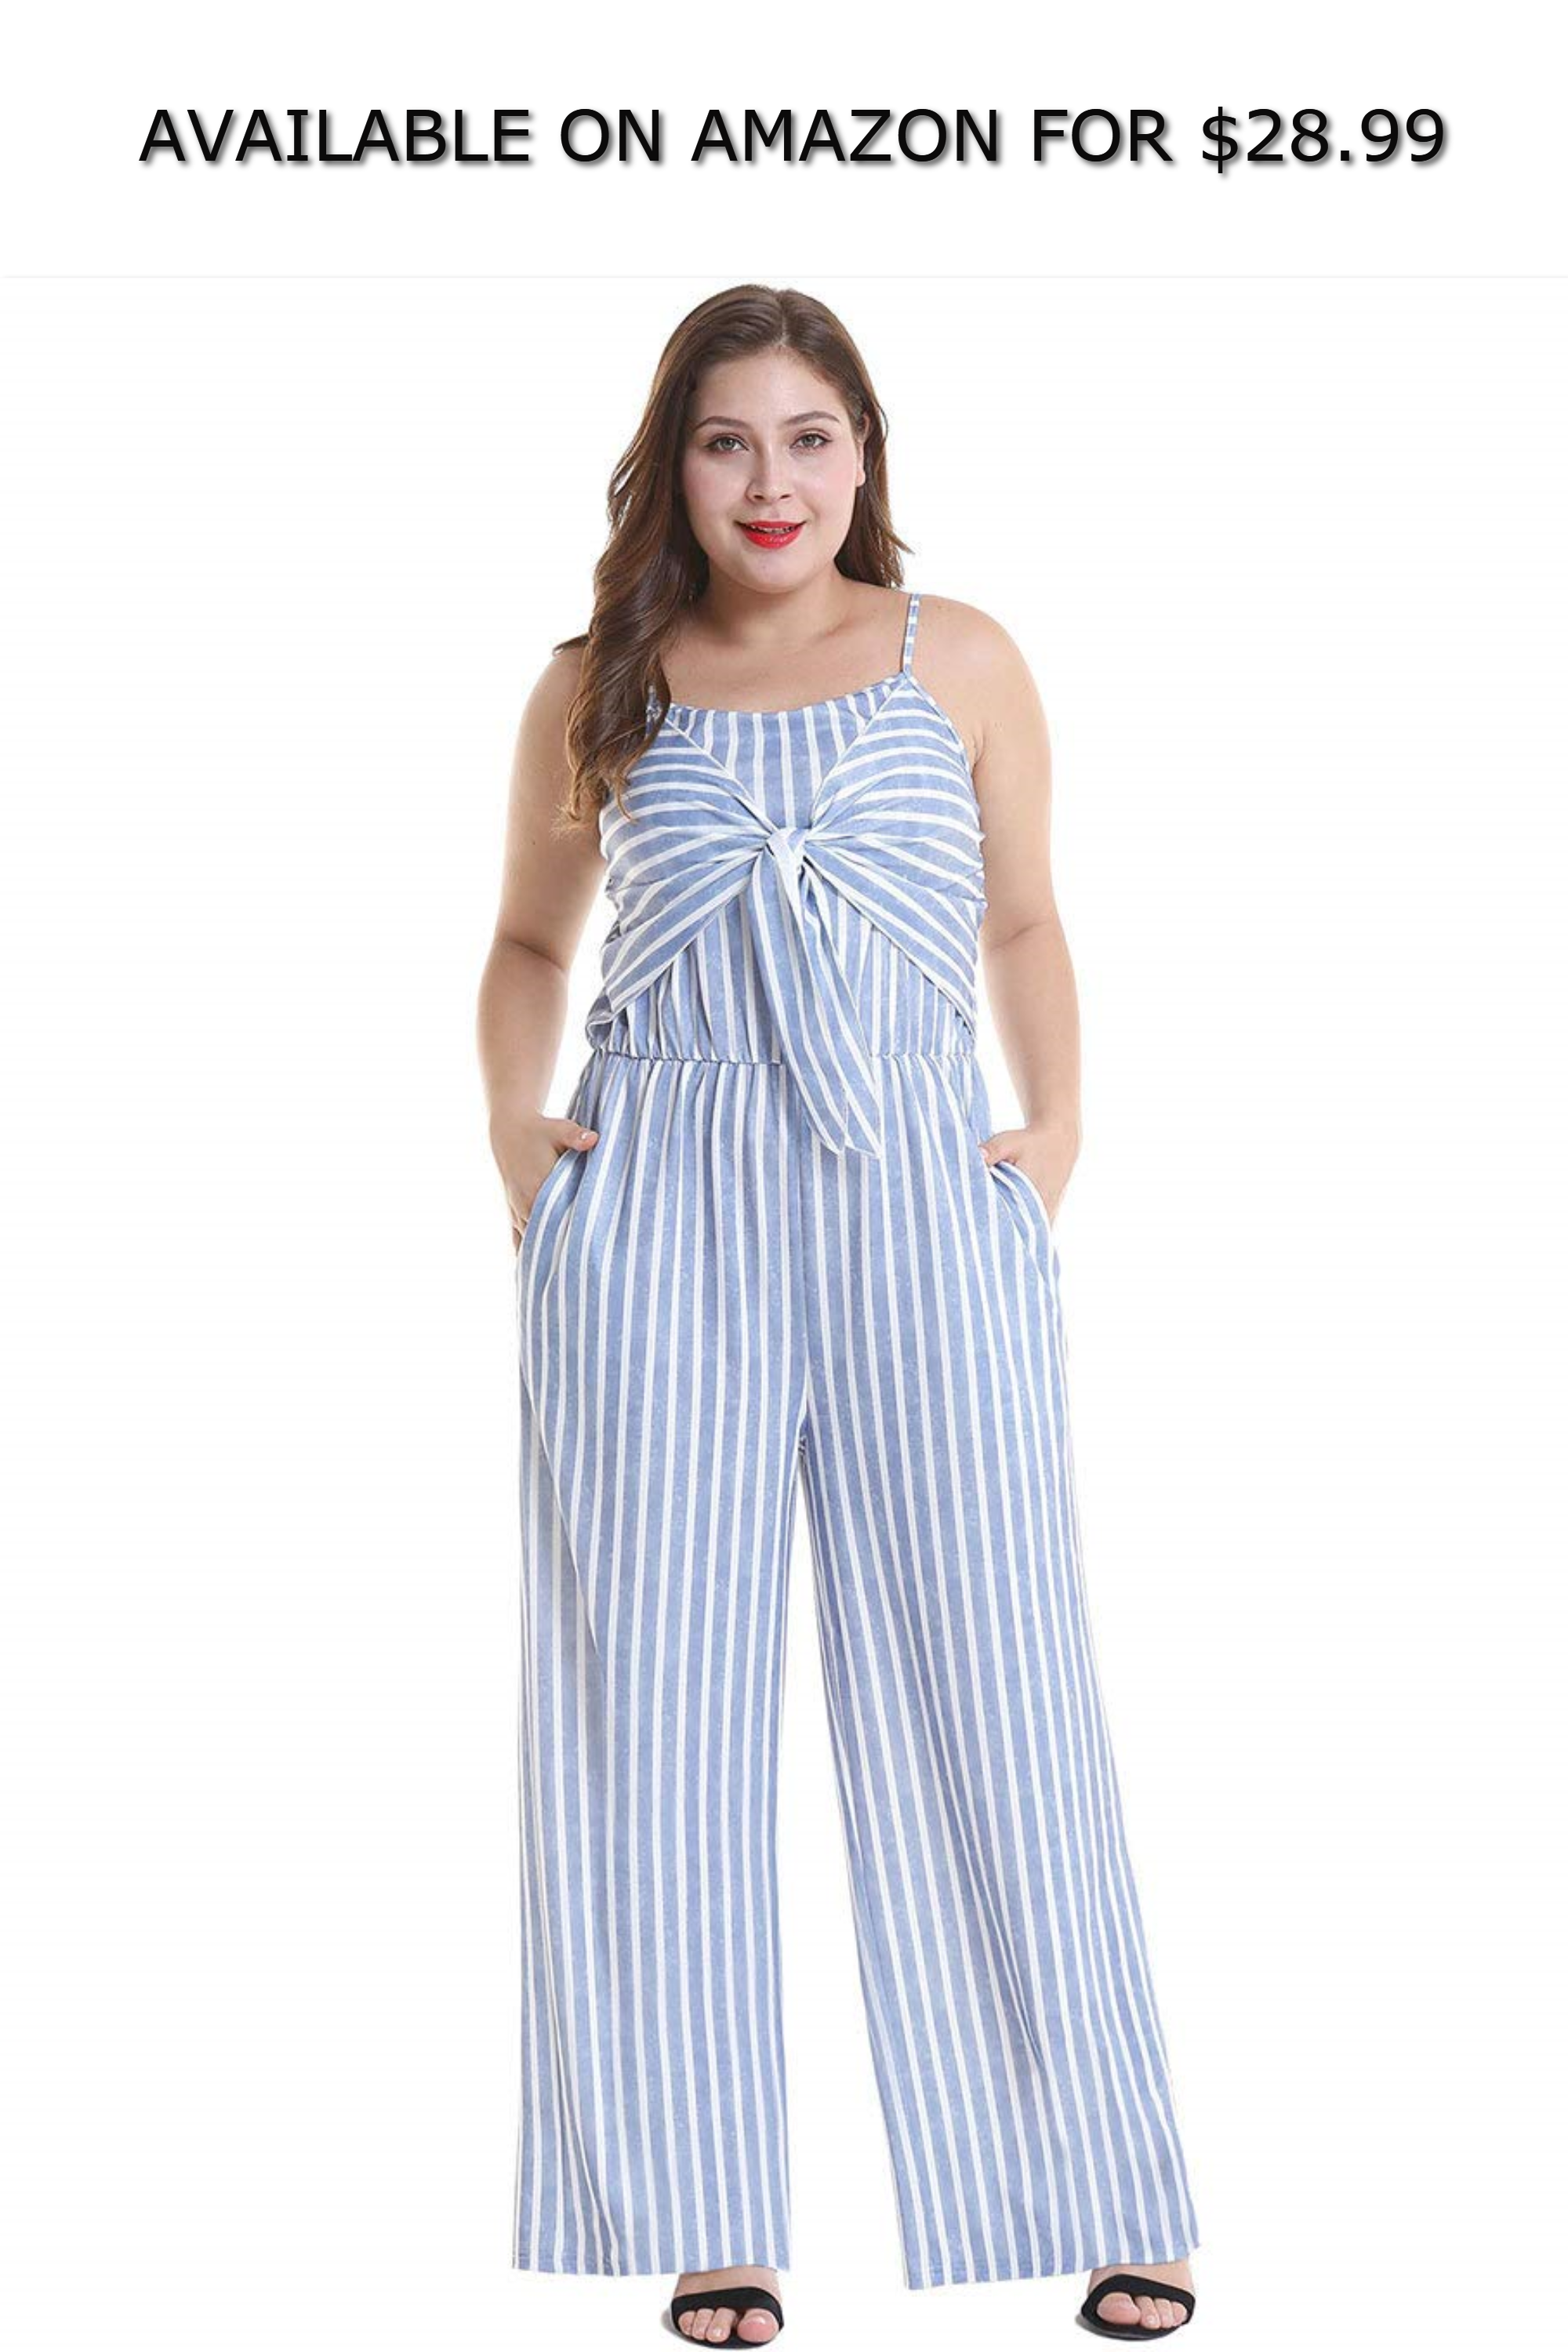 Cnxyf Womens Slim Sling Striped Jumpsuit Plus Size Available On